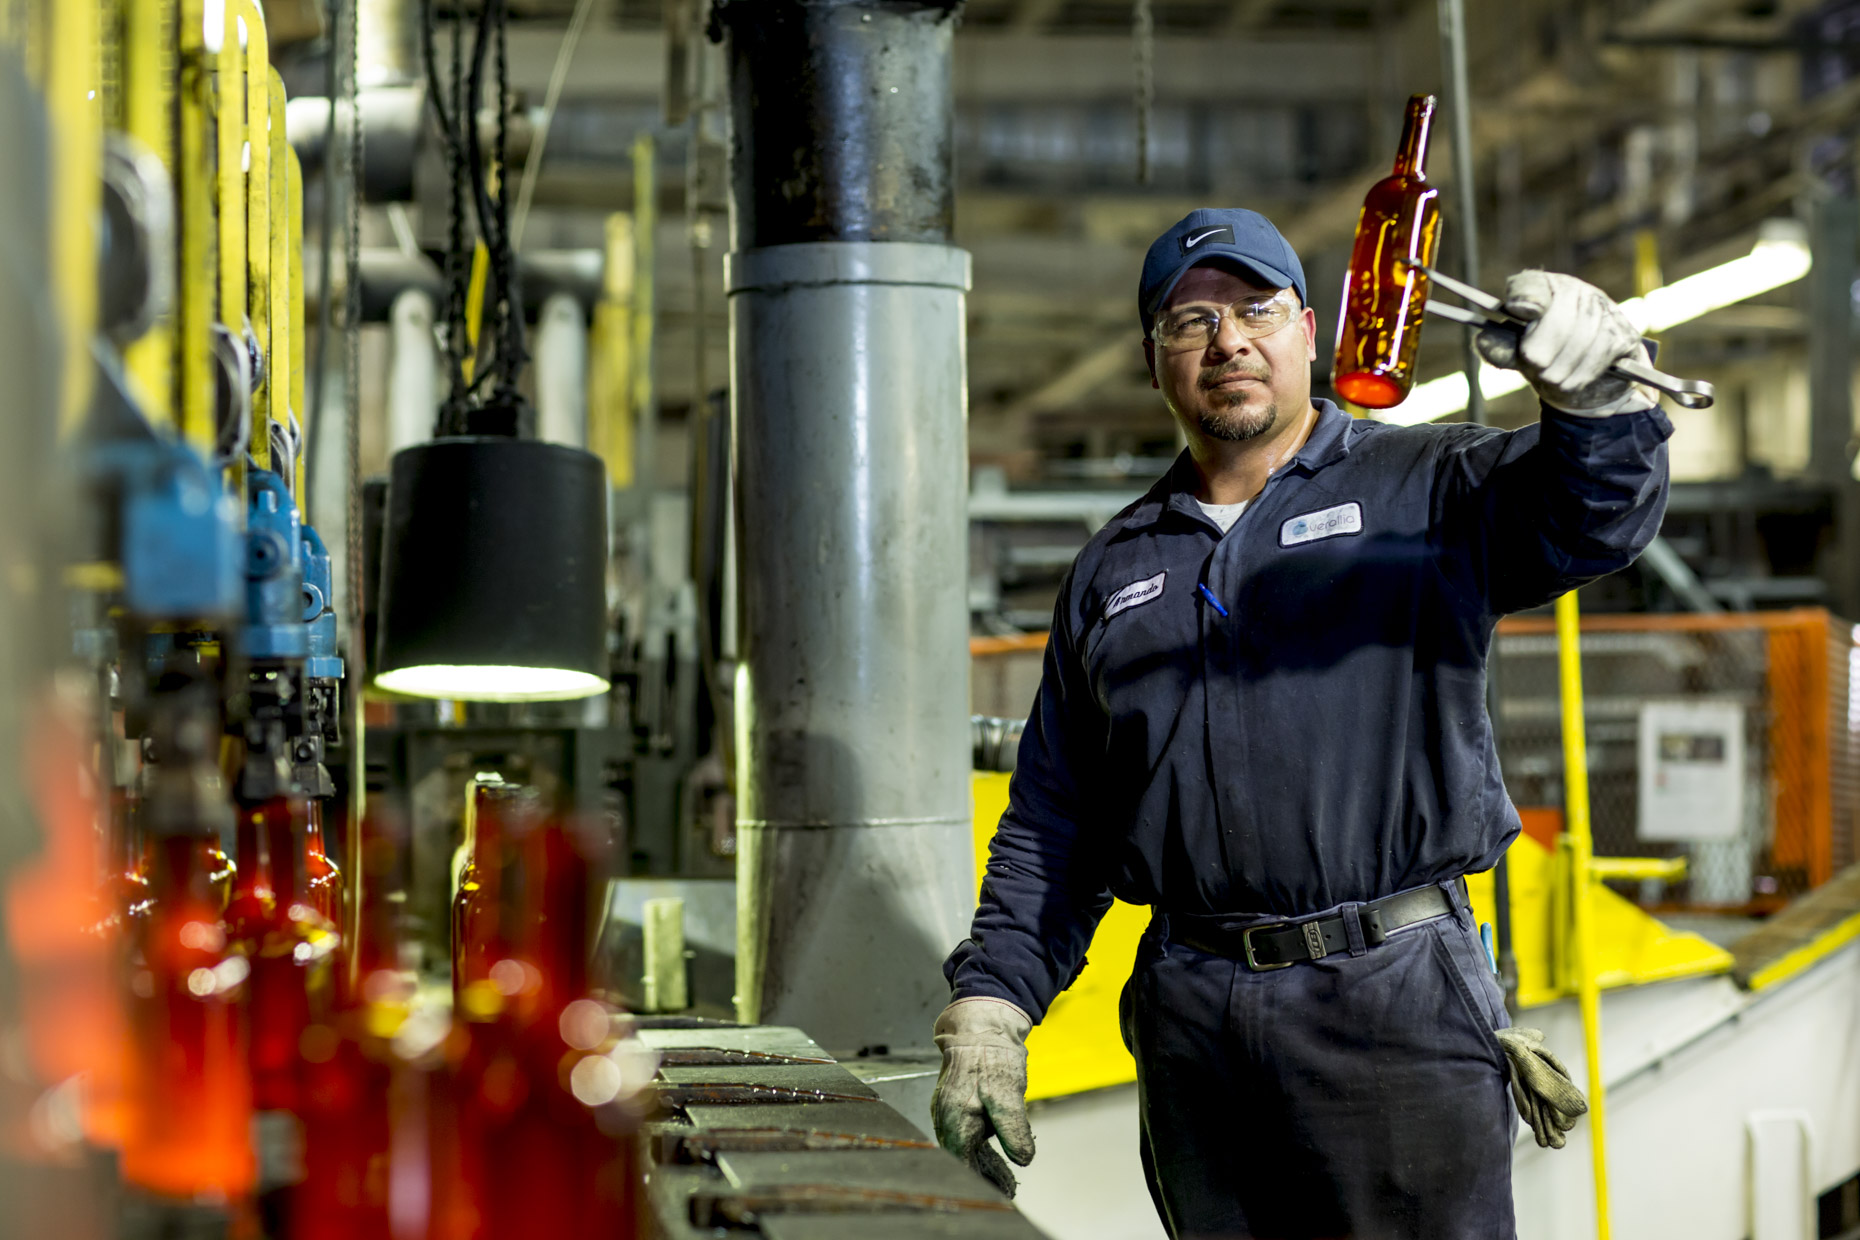 Man-inspecting-molton-glass-wine-bottle-in-factory-Inti-St-Clair-is201206190674